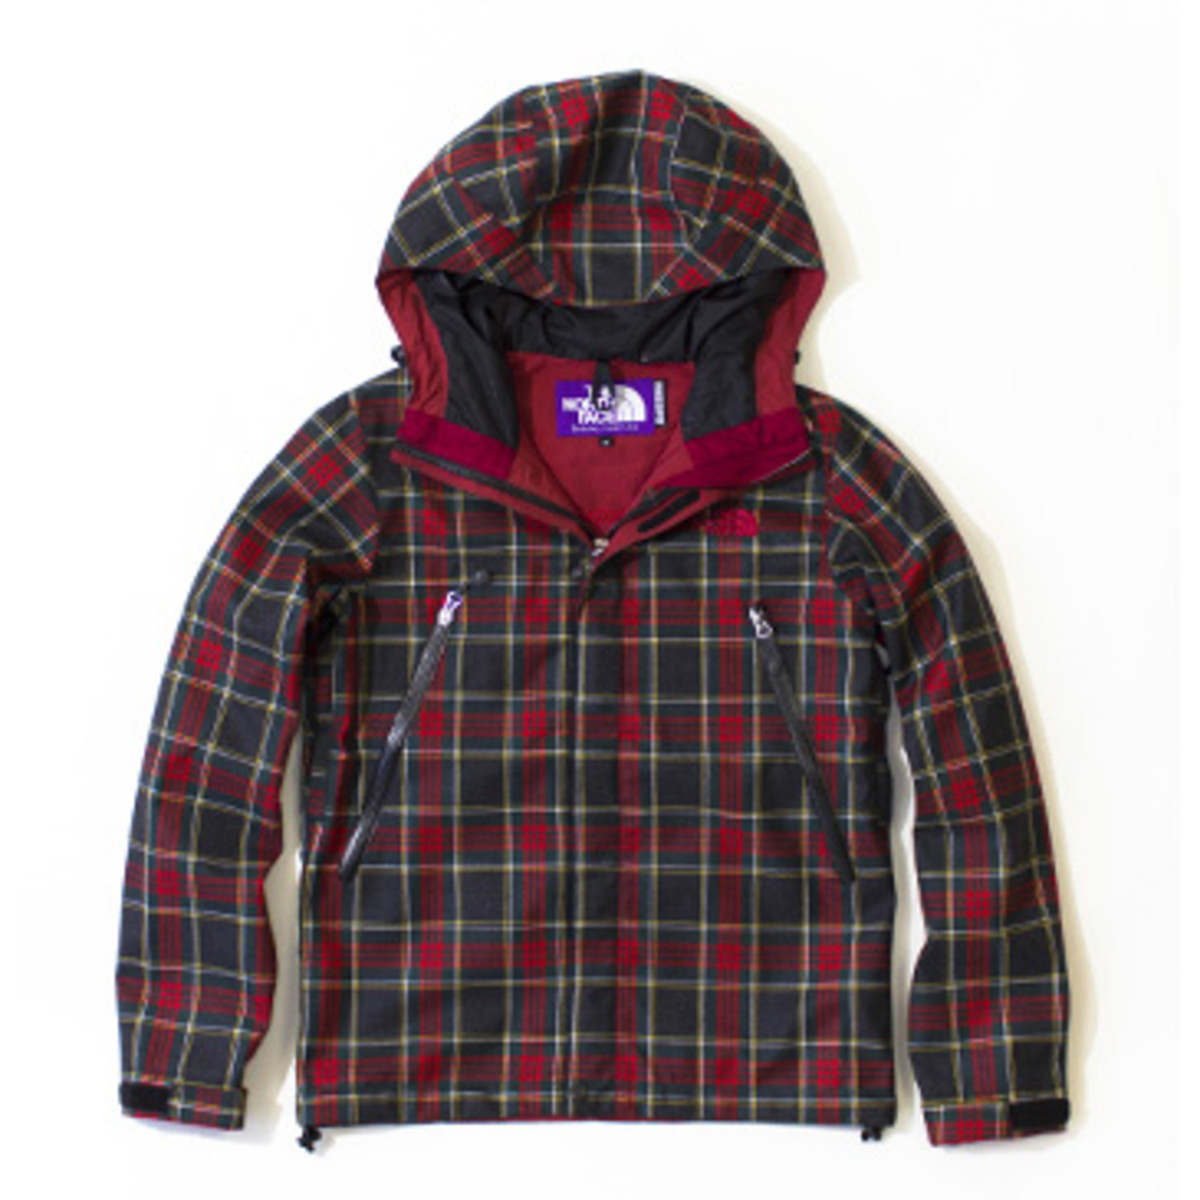 the-north-face-purple-label-climbing-jacket-03